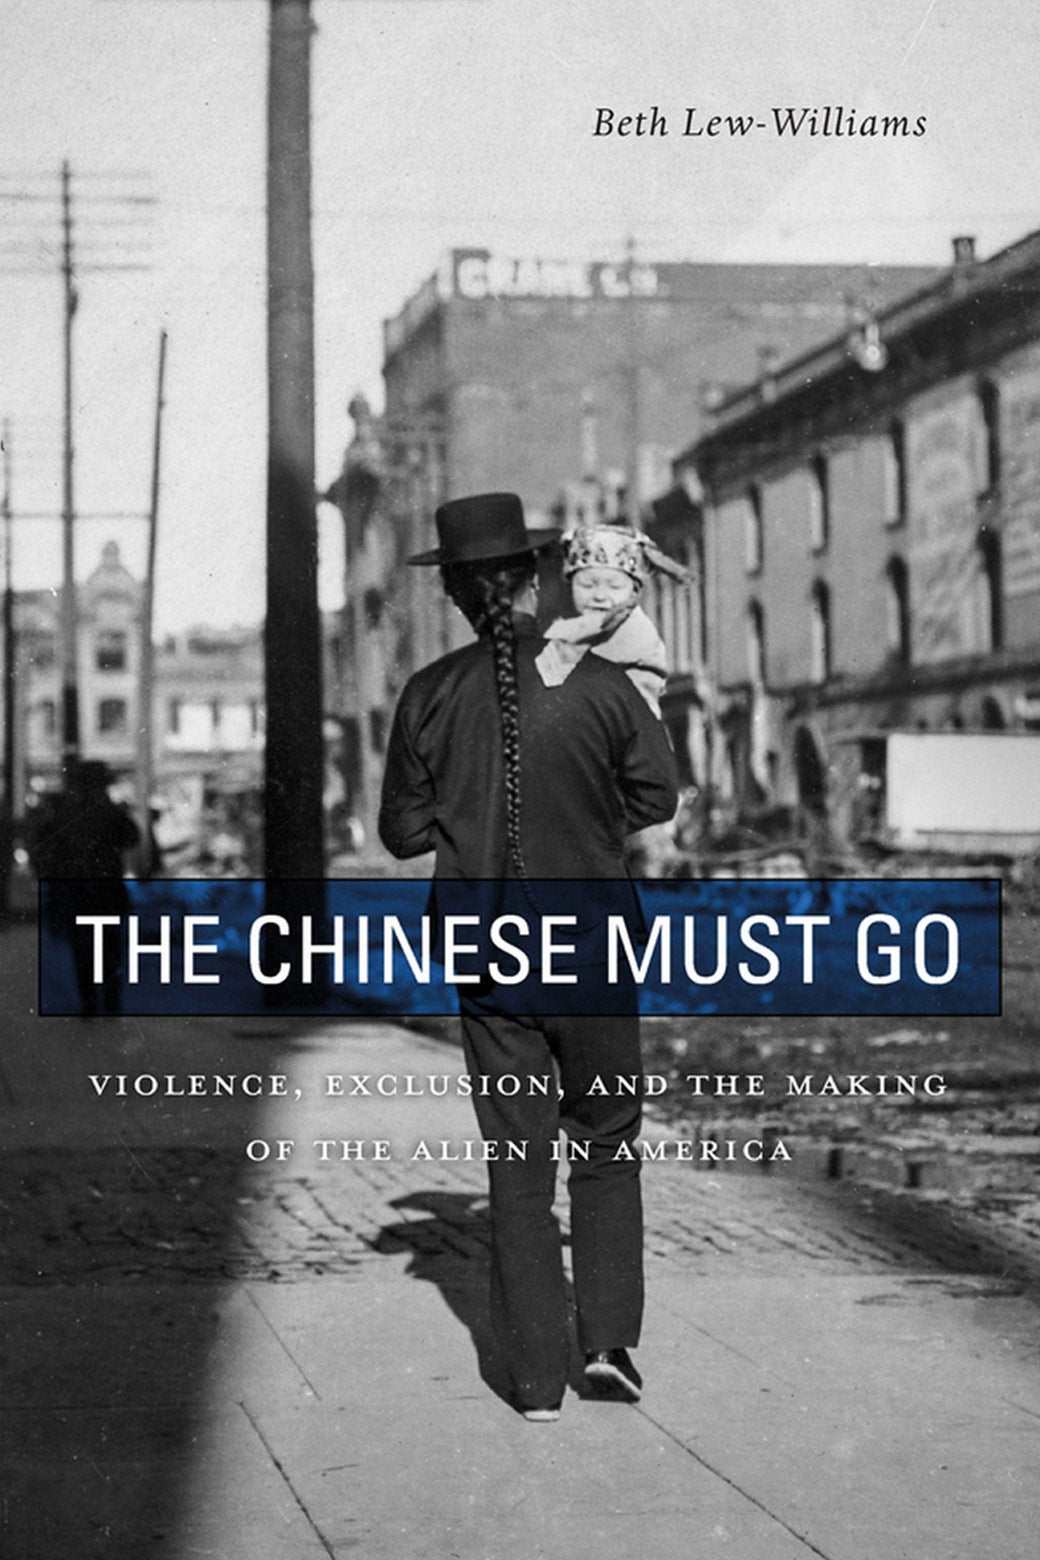 Cover of The Chinese Must Go.